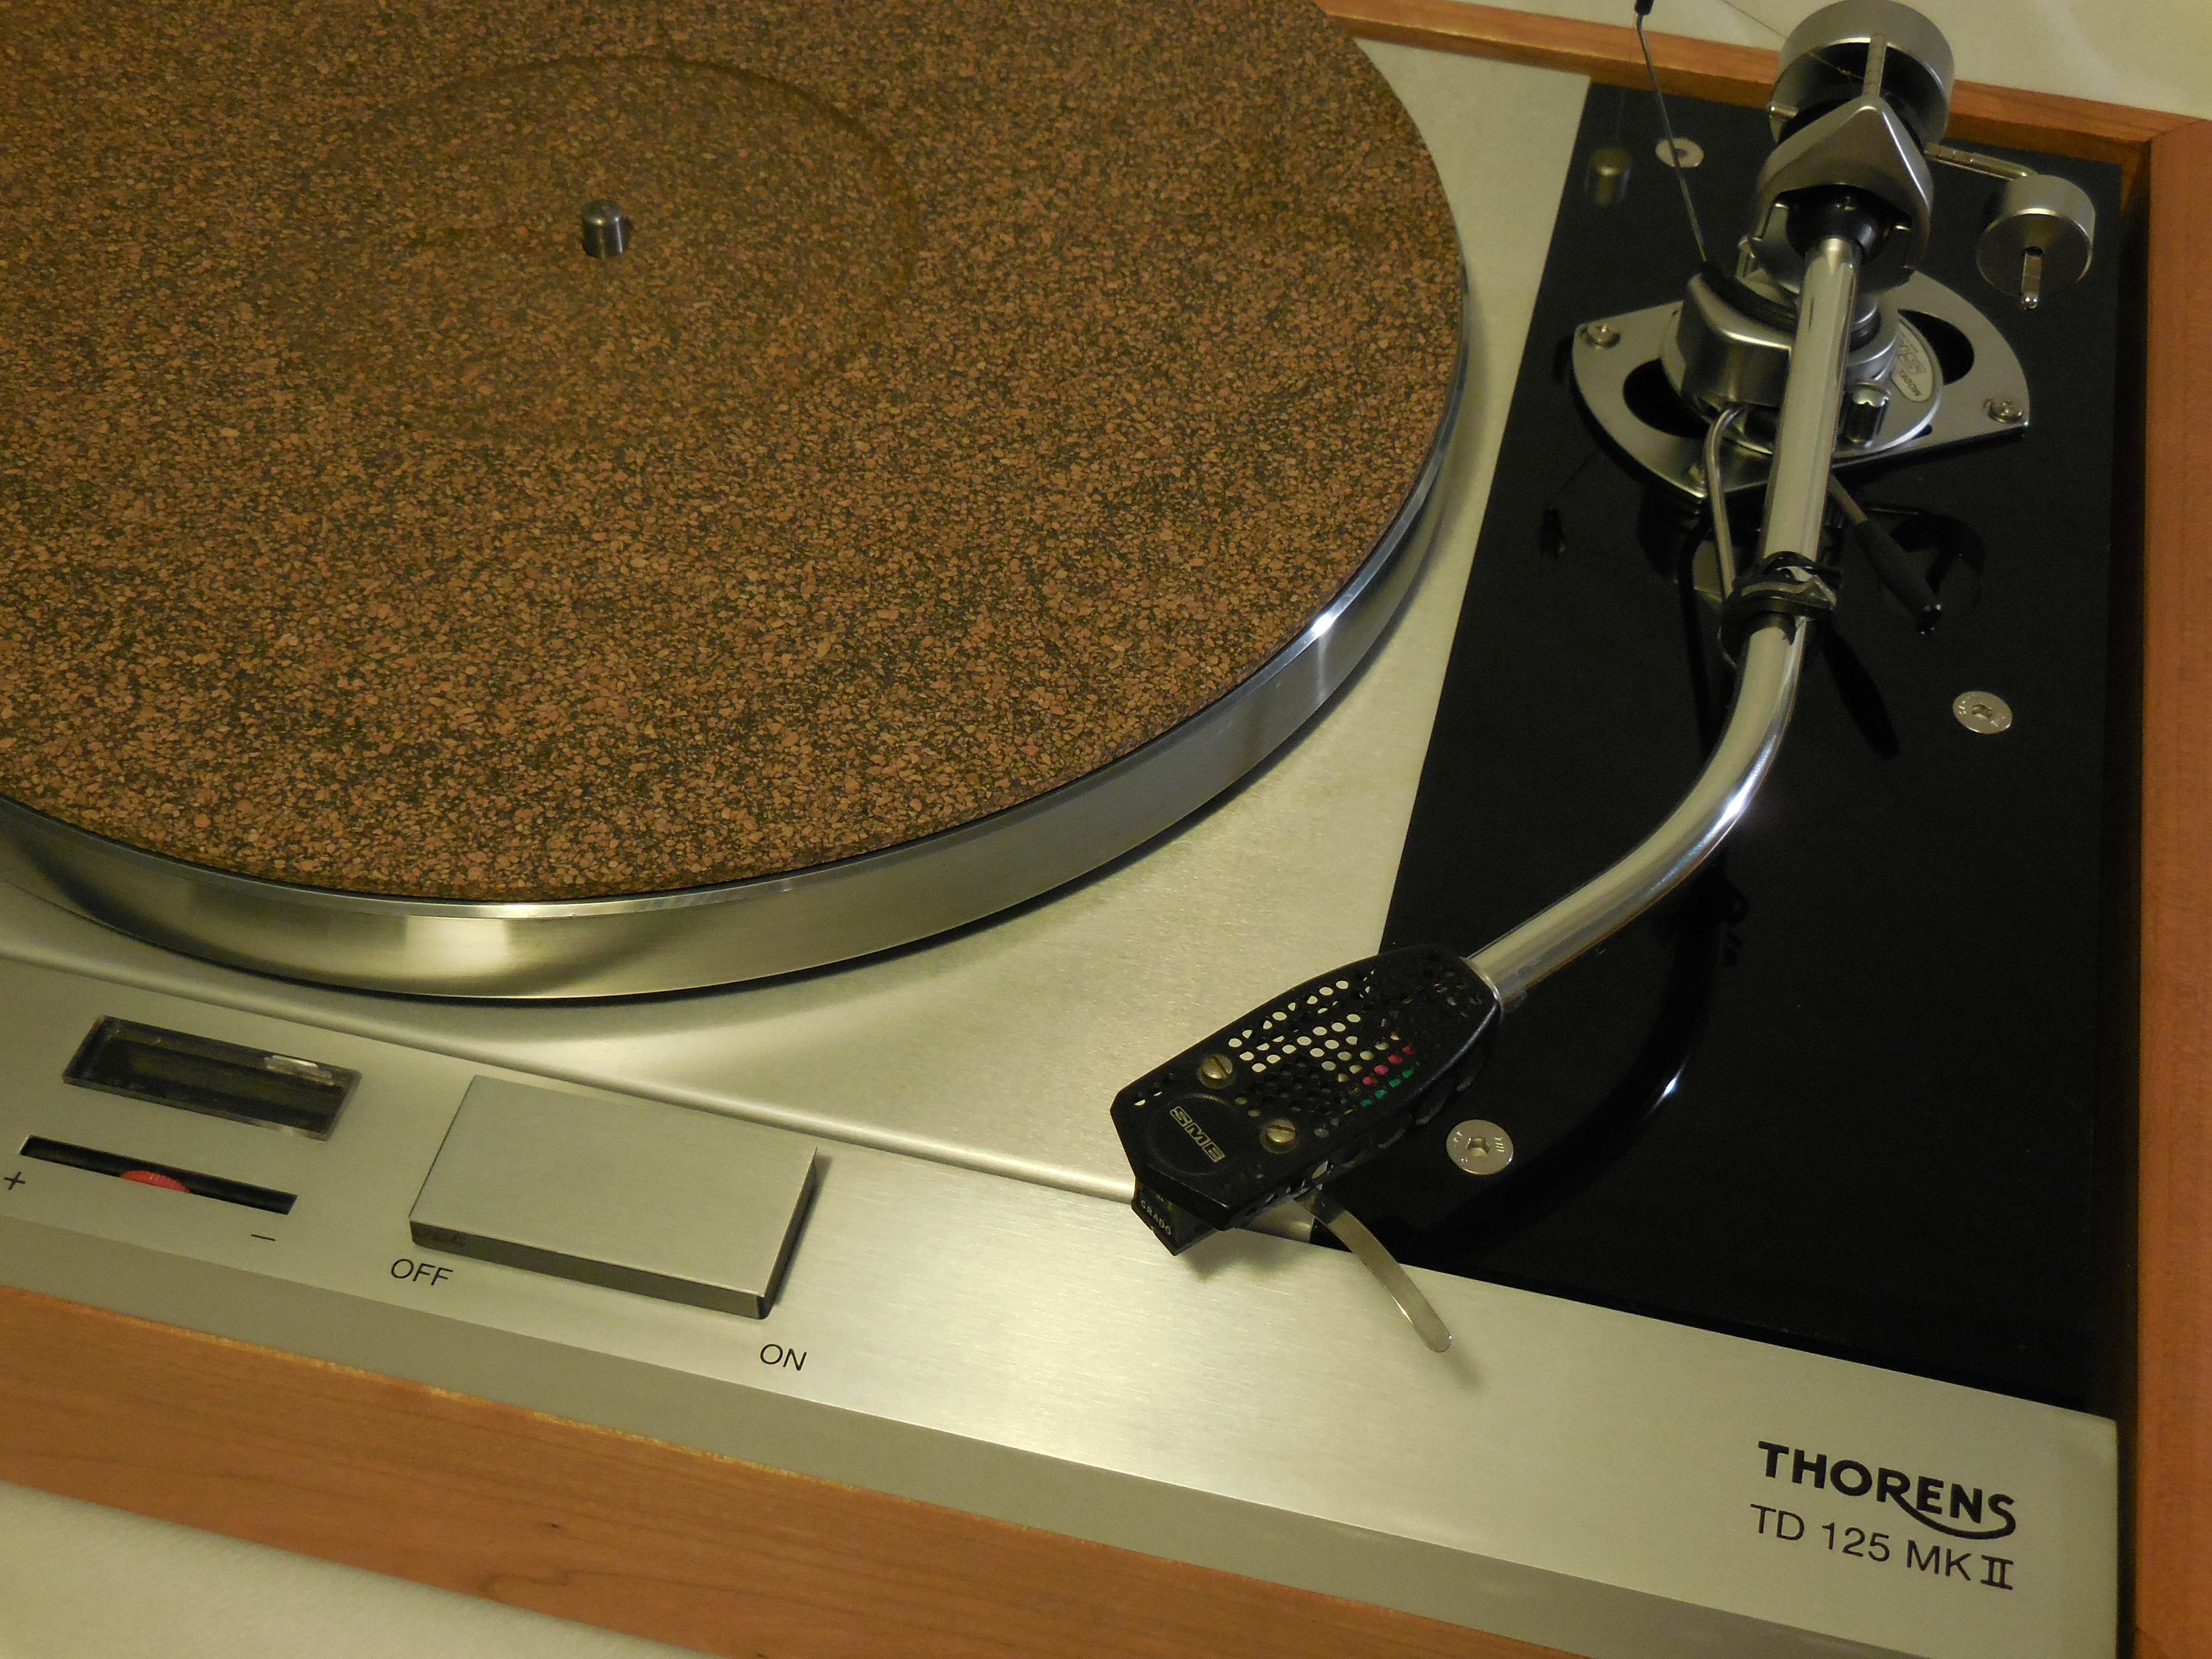 The Master Thorens Td 125 Mkii W Rewired Sme 3009 Arm